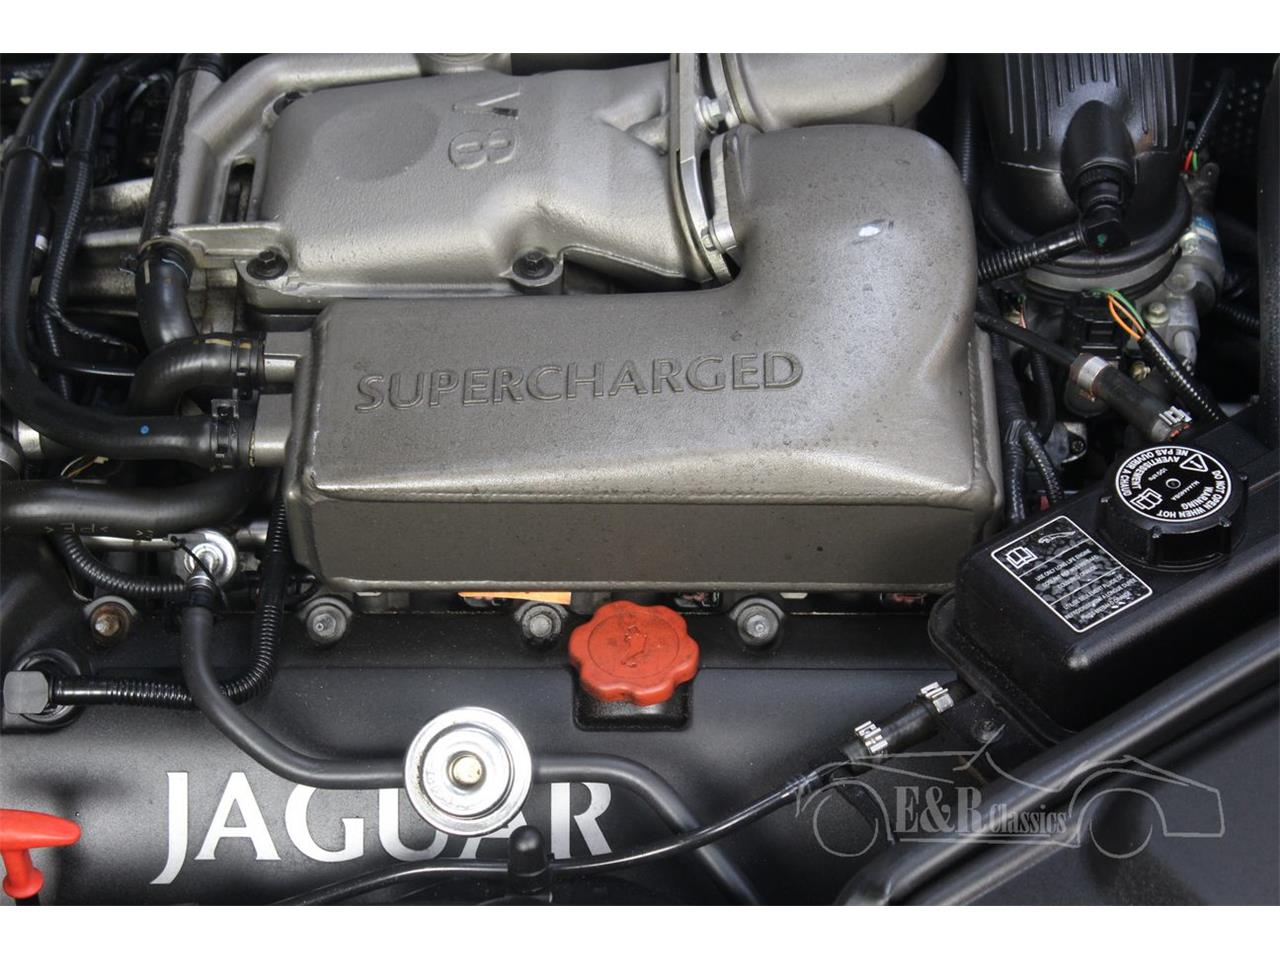 Large Picture of 2003 Jaguar XKR - $39,200.00 Offered by E & R Classics - Q3GE